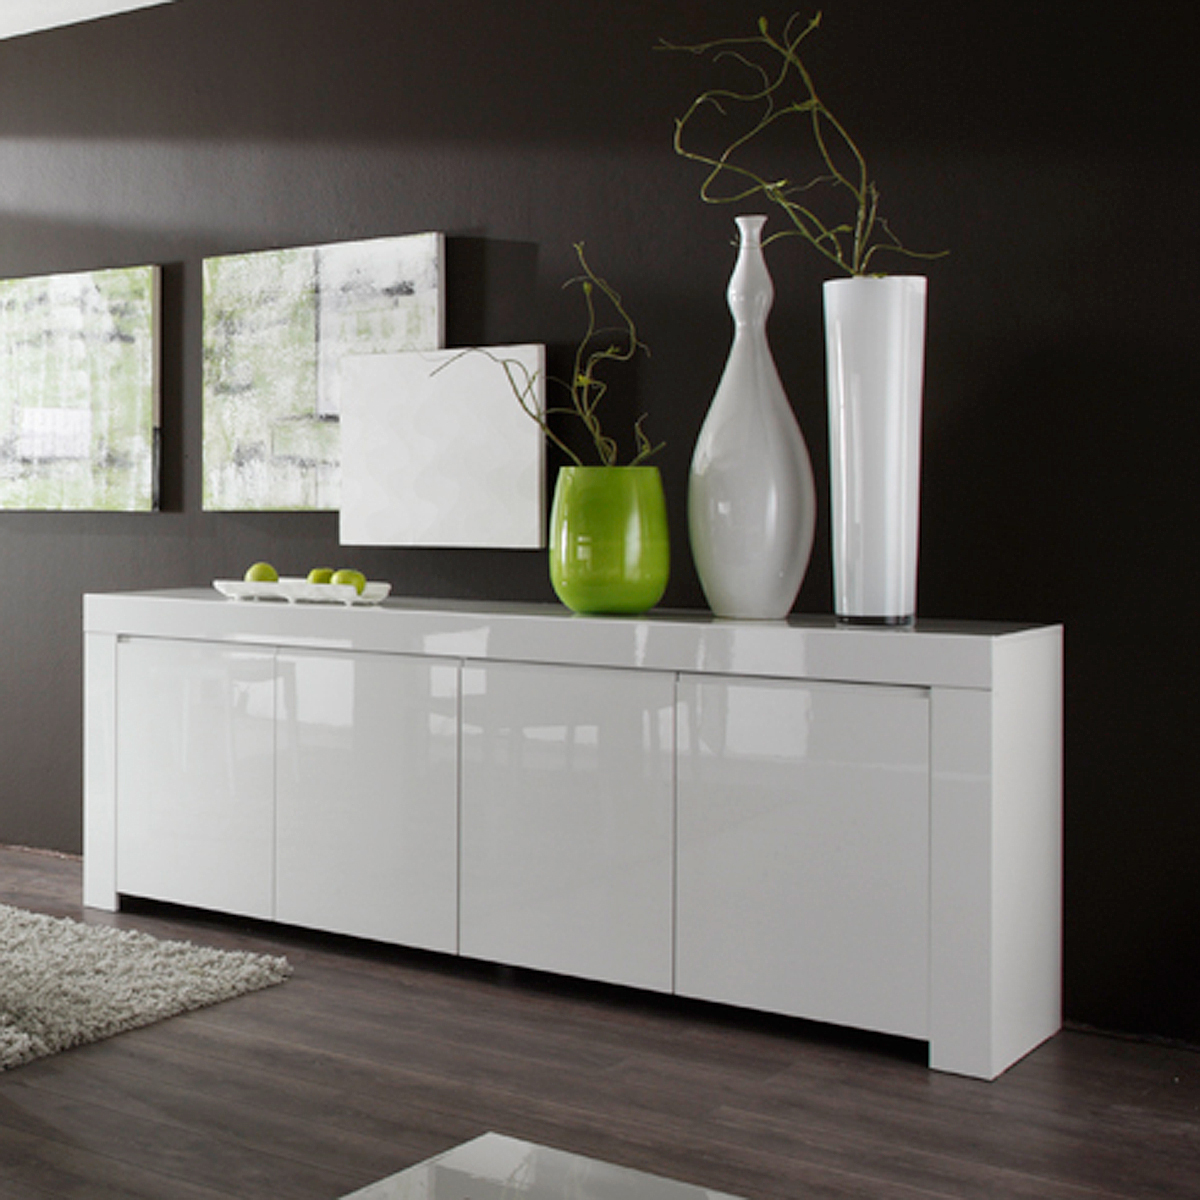 sideboard amalfi wohnzimmer anrichte in wei echt hochglanz lackiert 210cm breit ebay. Black Bedroom Furniture Sets. Home Design Ideas